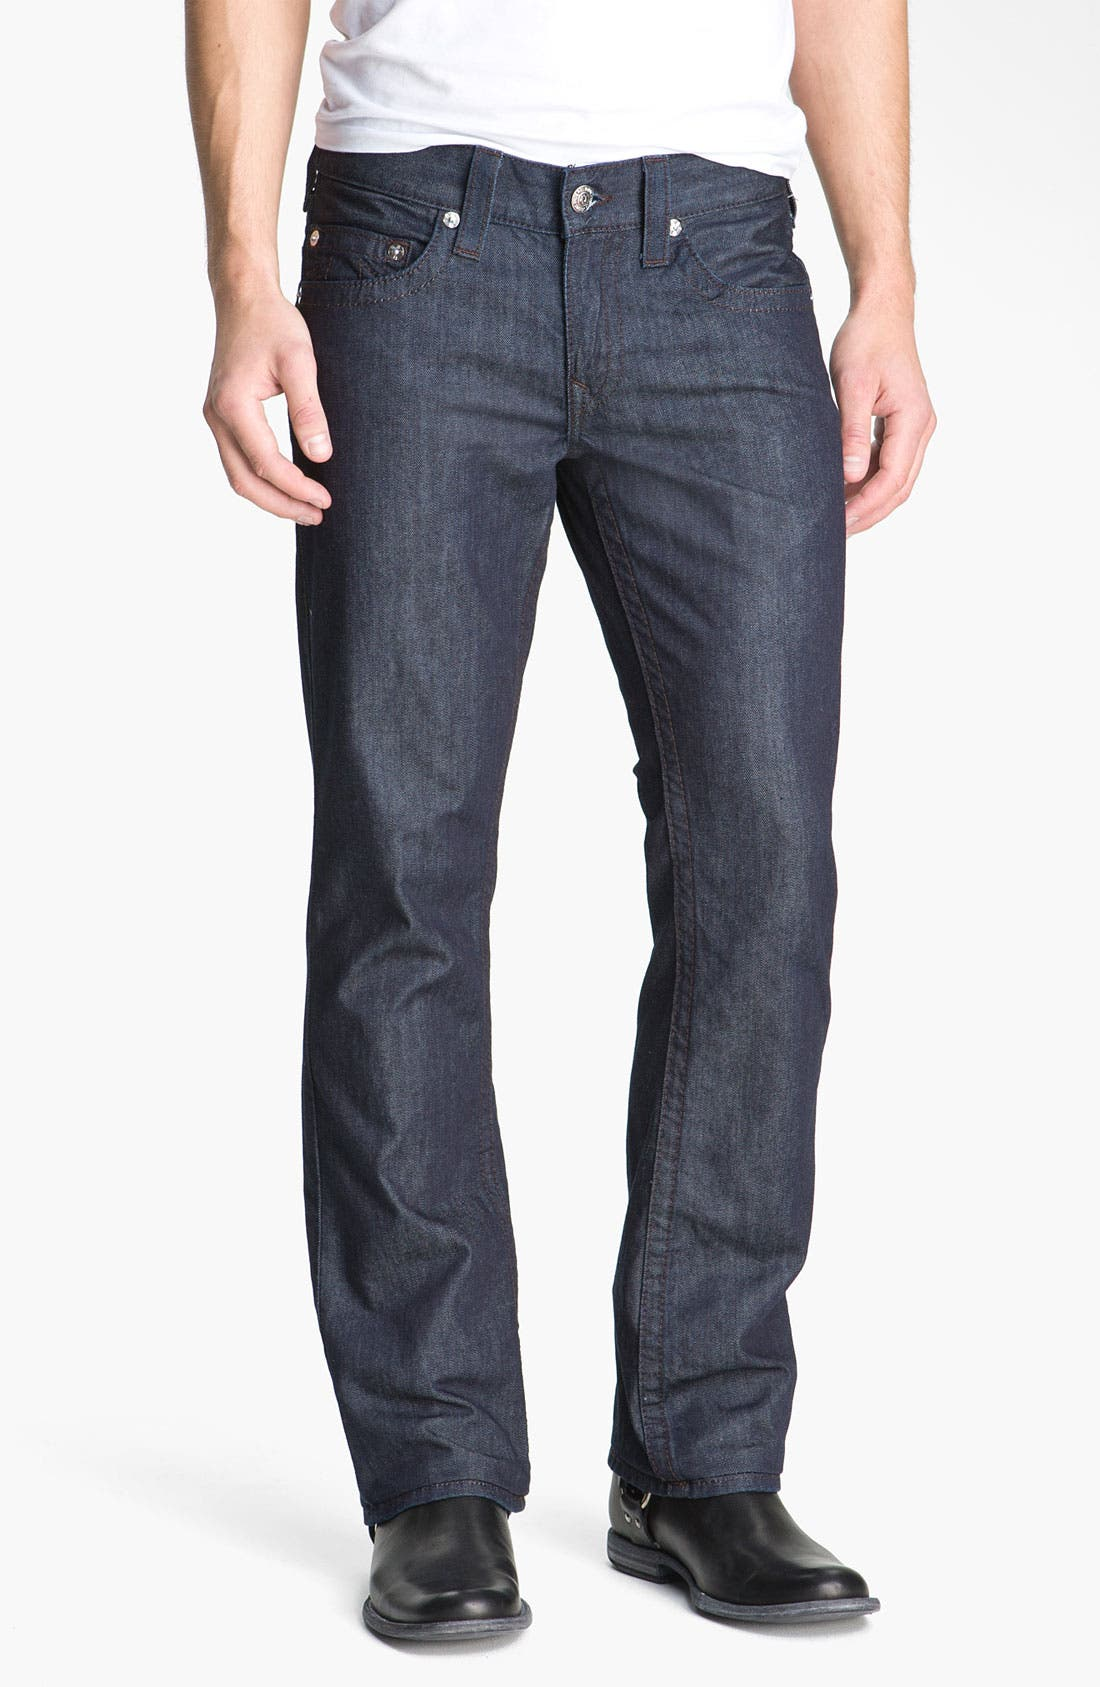 Alternate Image 2  - True Religion Brand Jeans 'Bobby' Straight Leg Jeans (Bodyrinse)